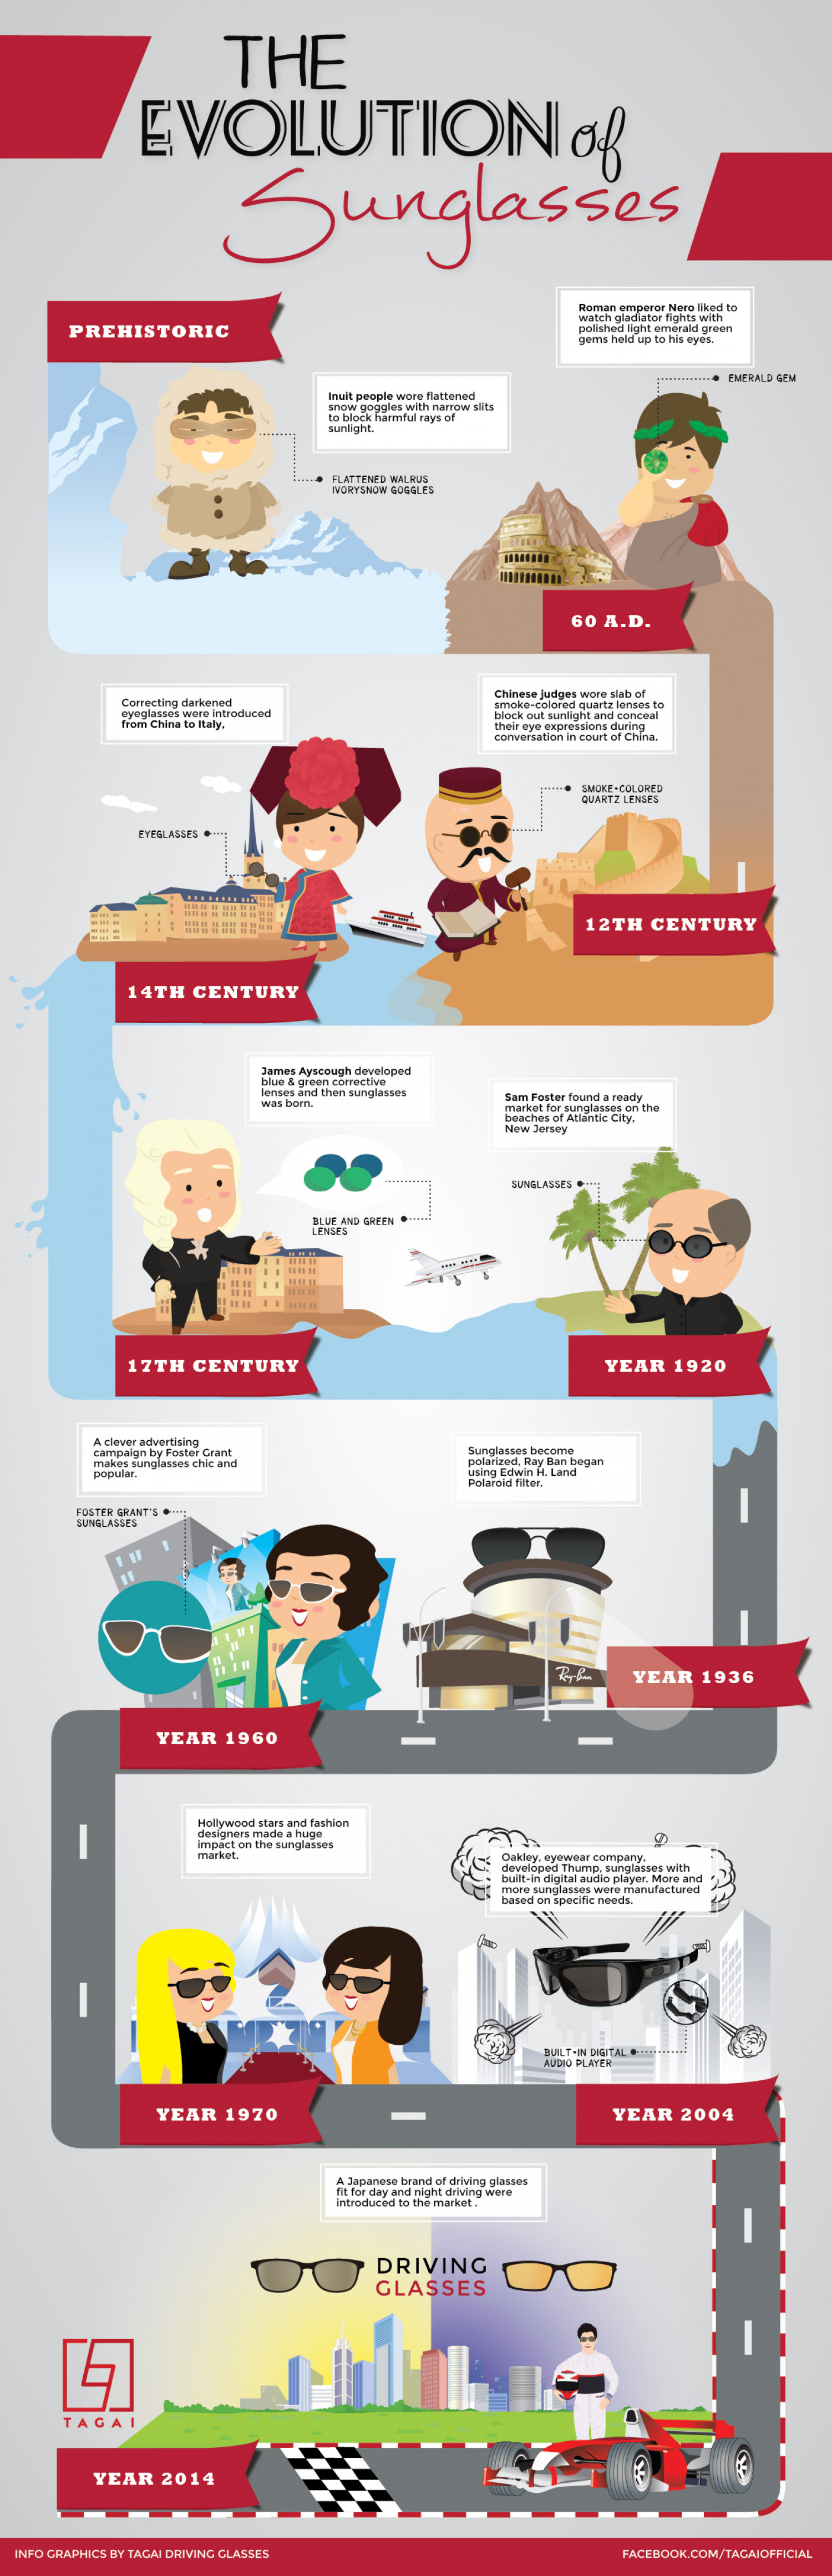 The Evolution of Sunglasses Infographic